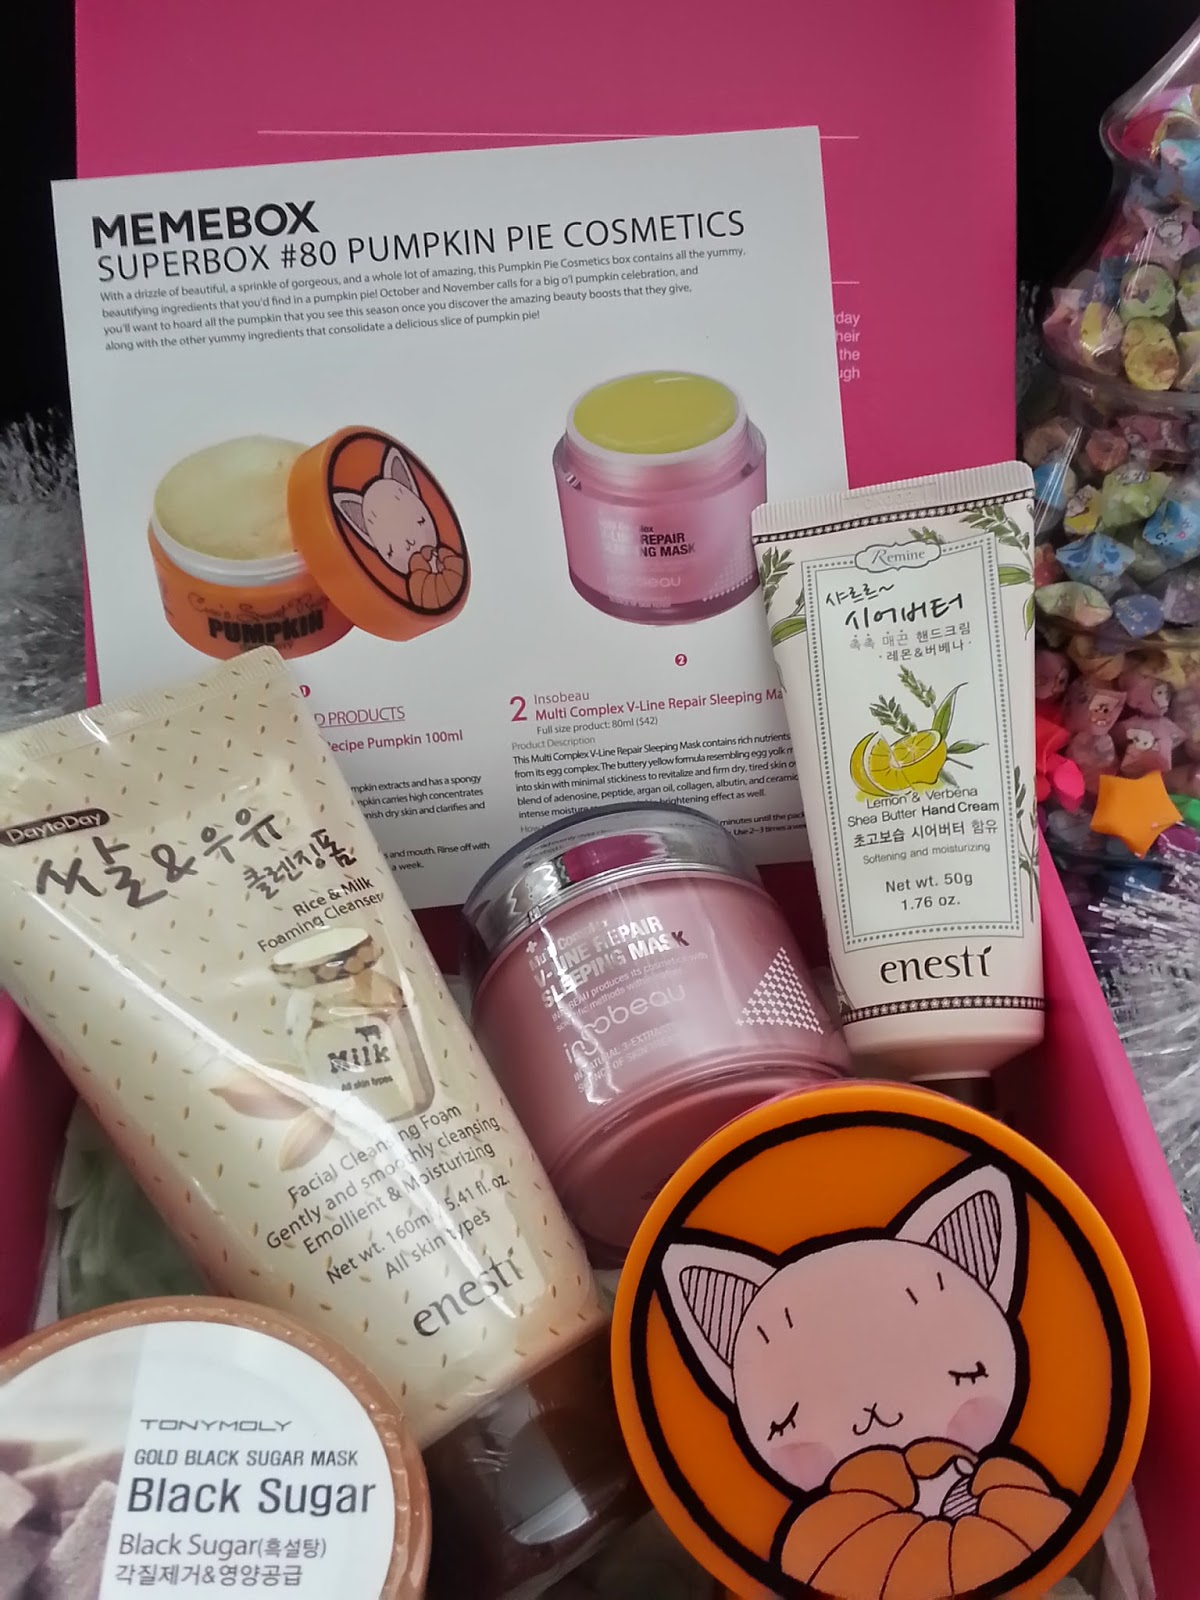 Memebox Pumpkin Pie Cosmetics goodies